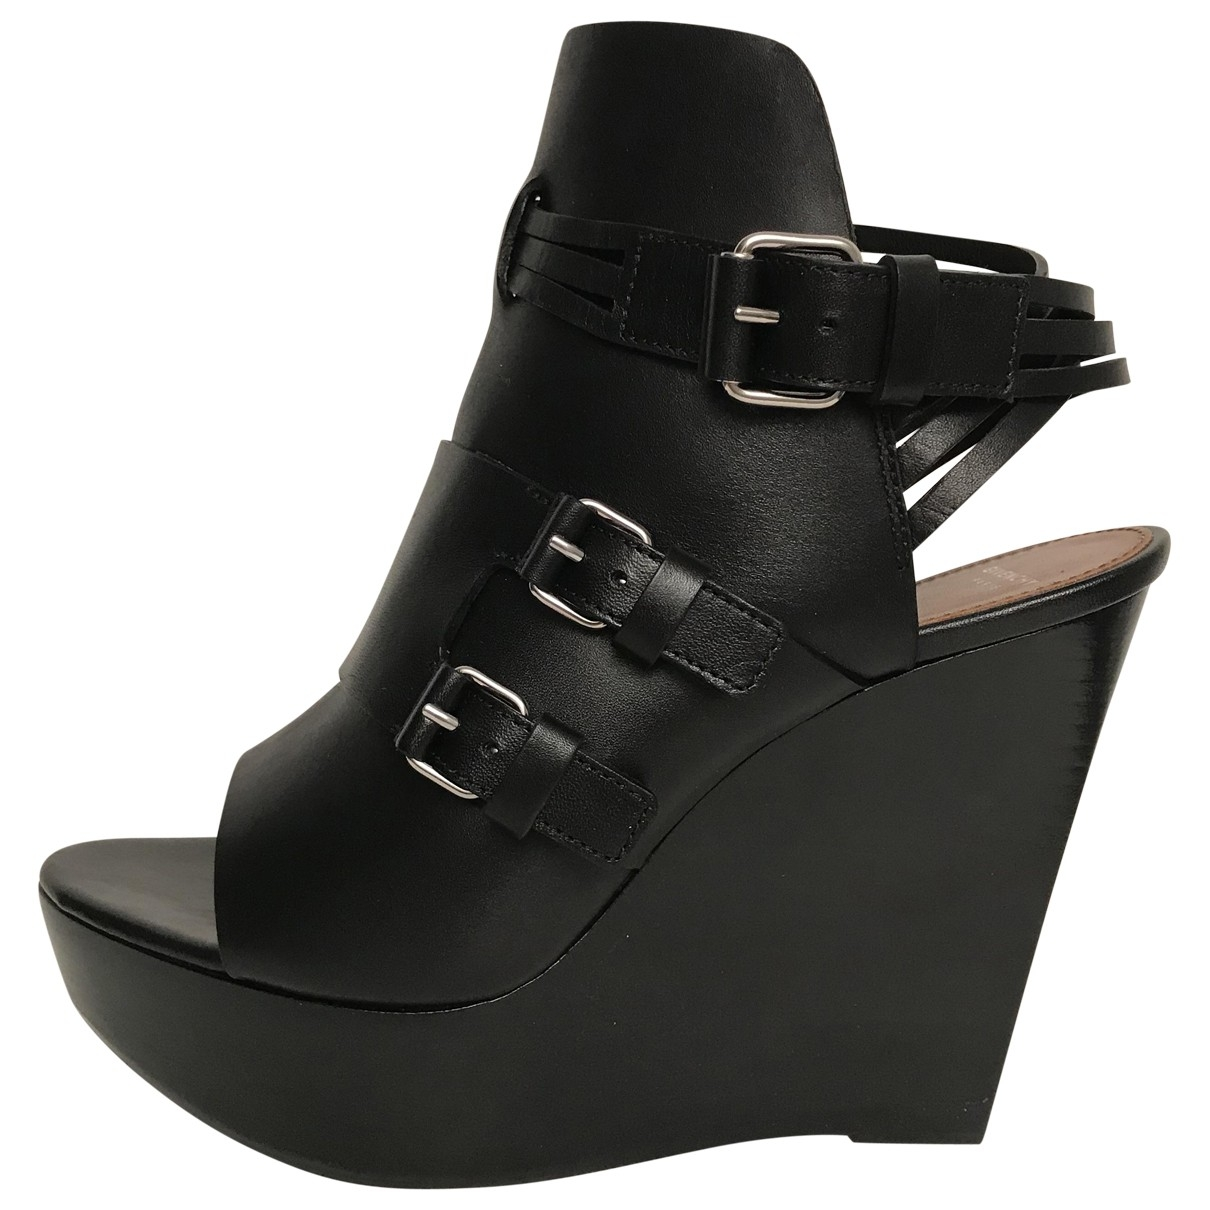 Givenchy \N Black Leather Sandals for Women 36.5 EU